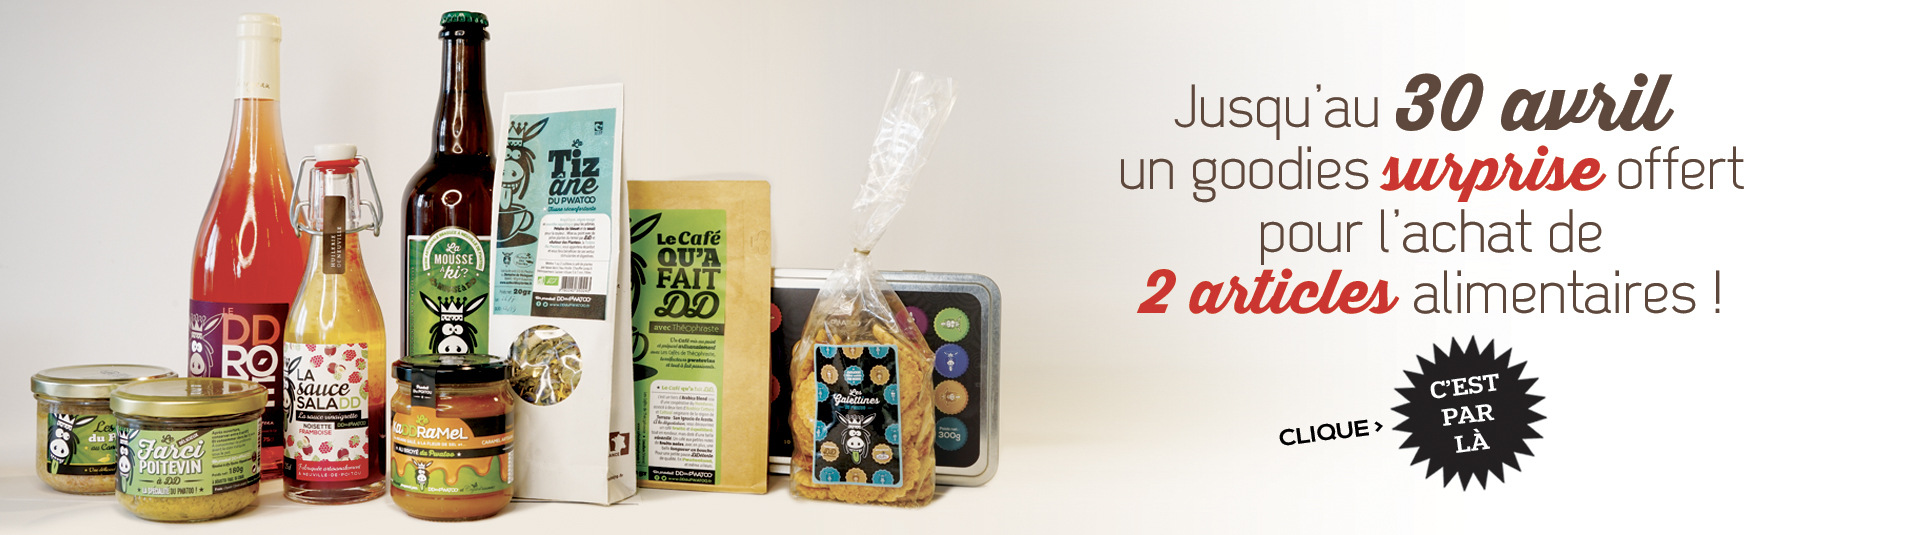 Slyder promo alimentaire